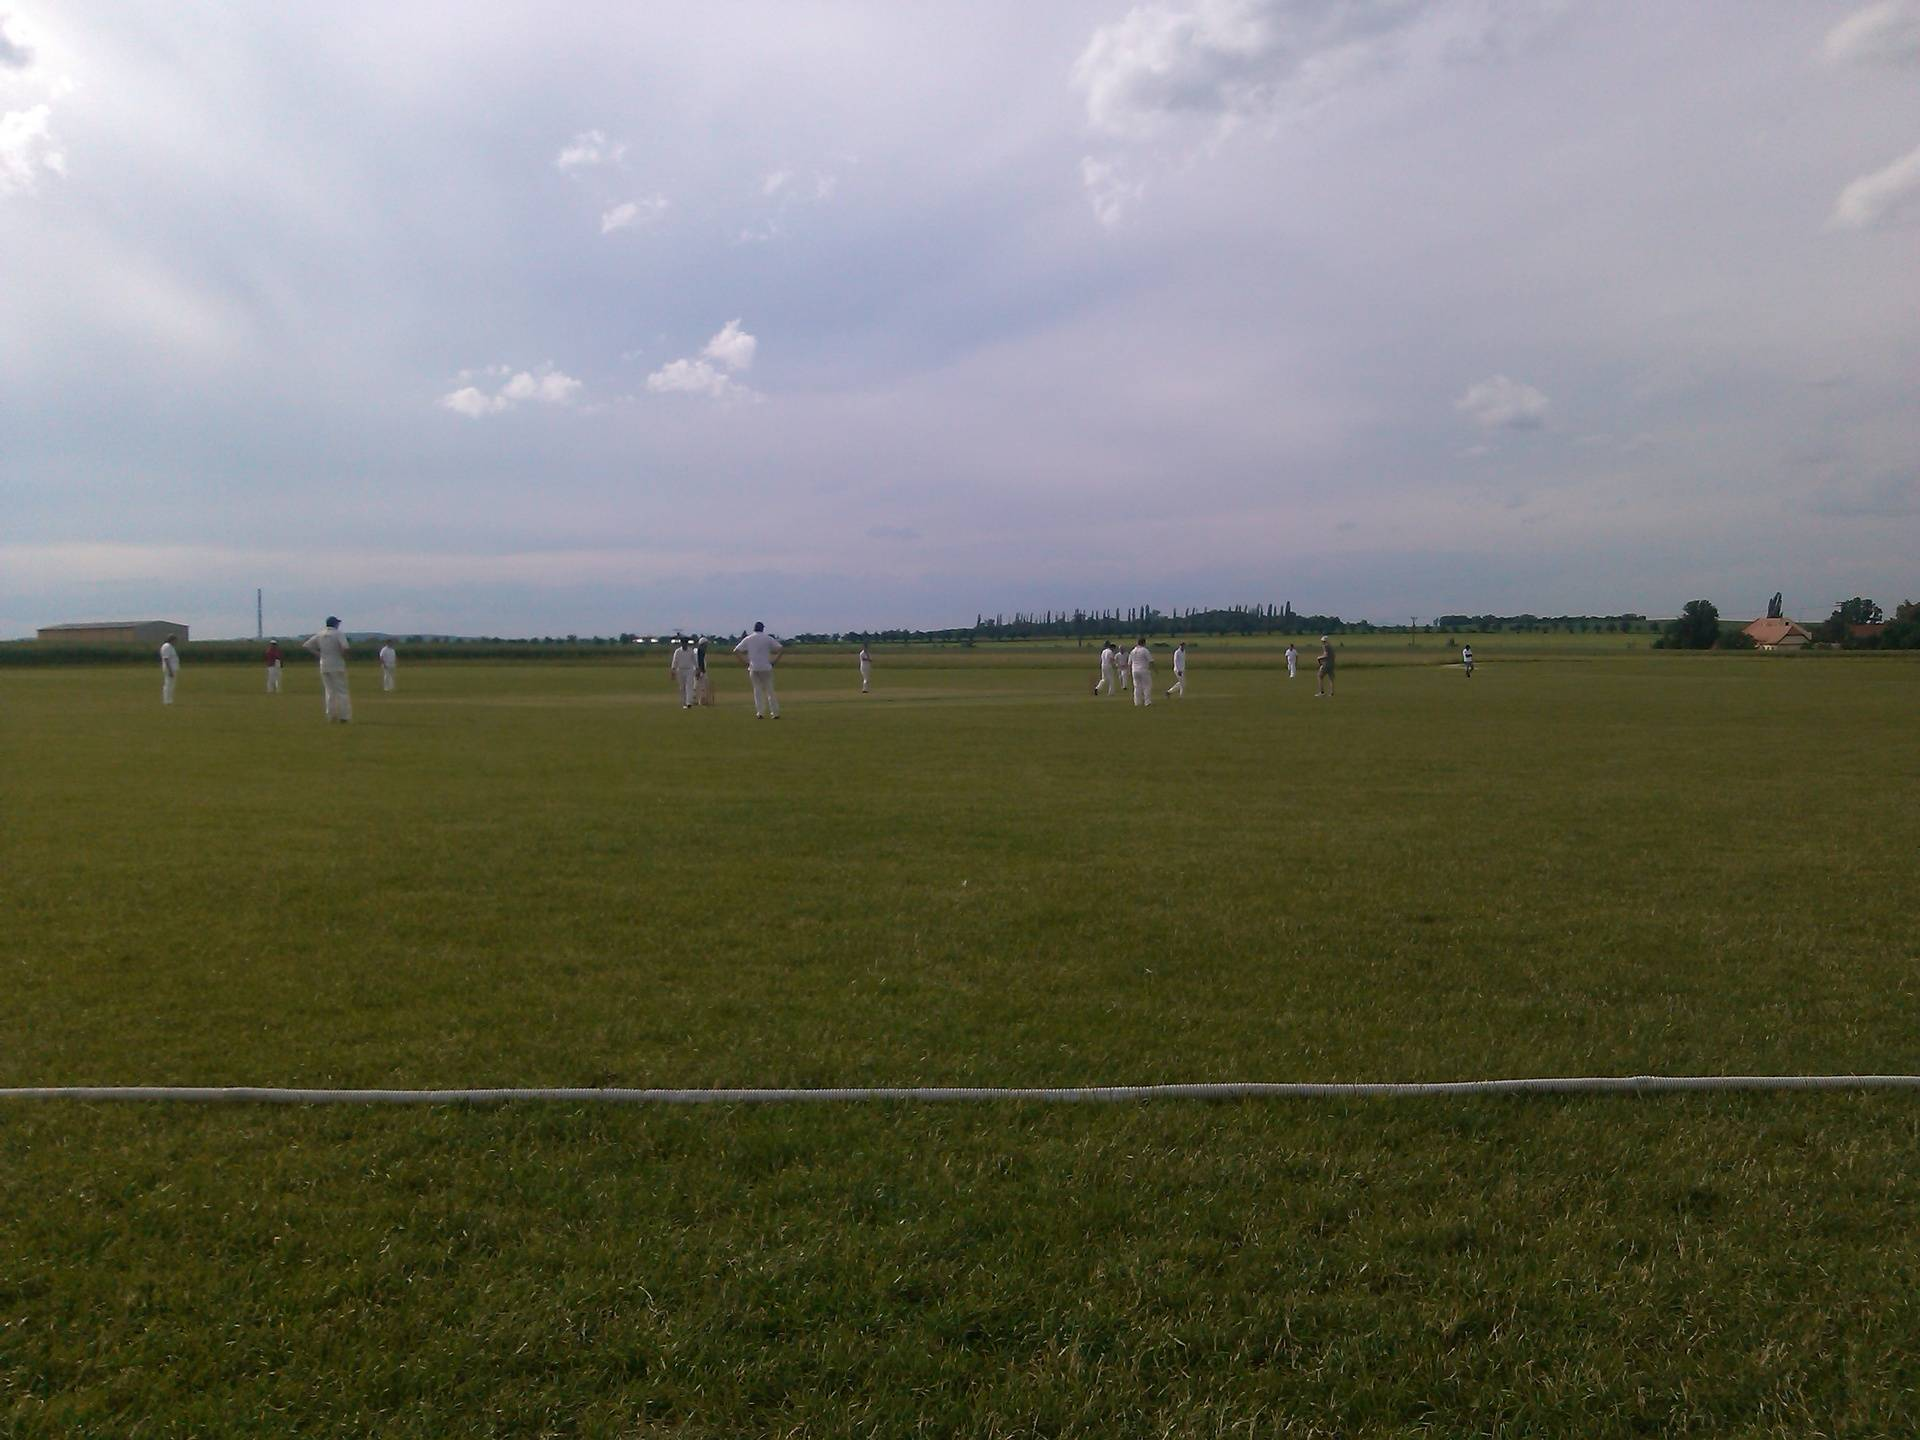 View from the boundary